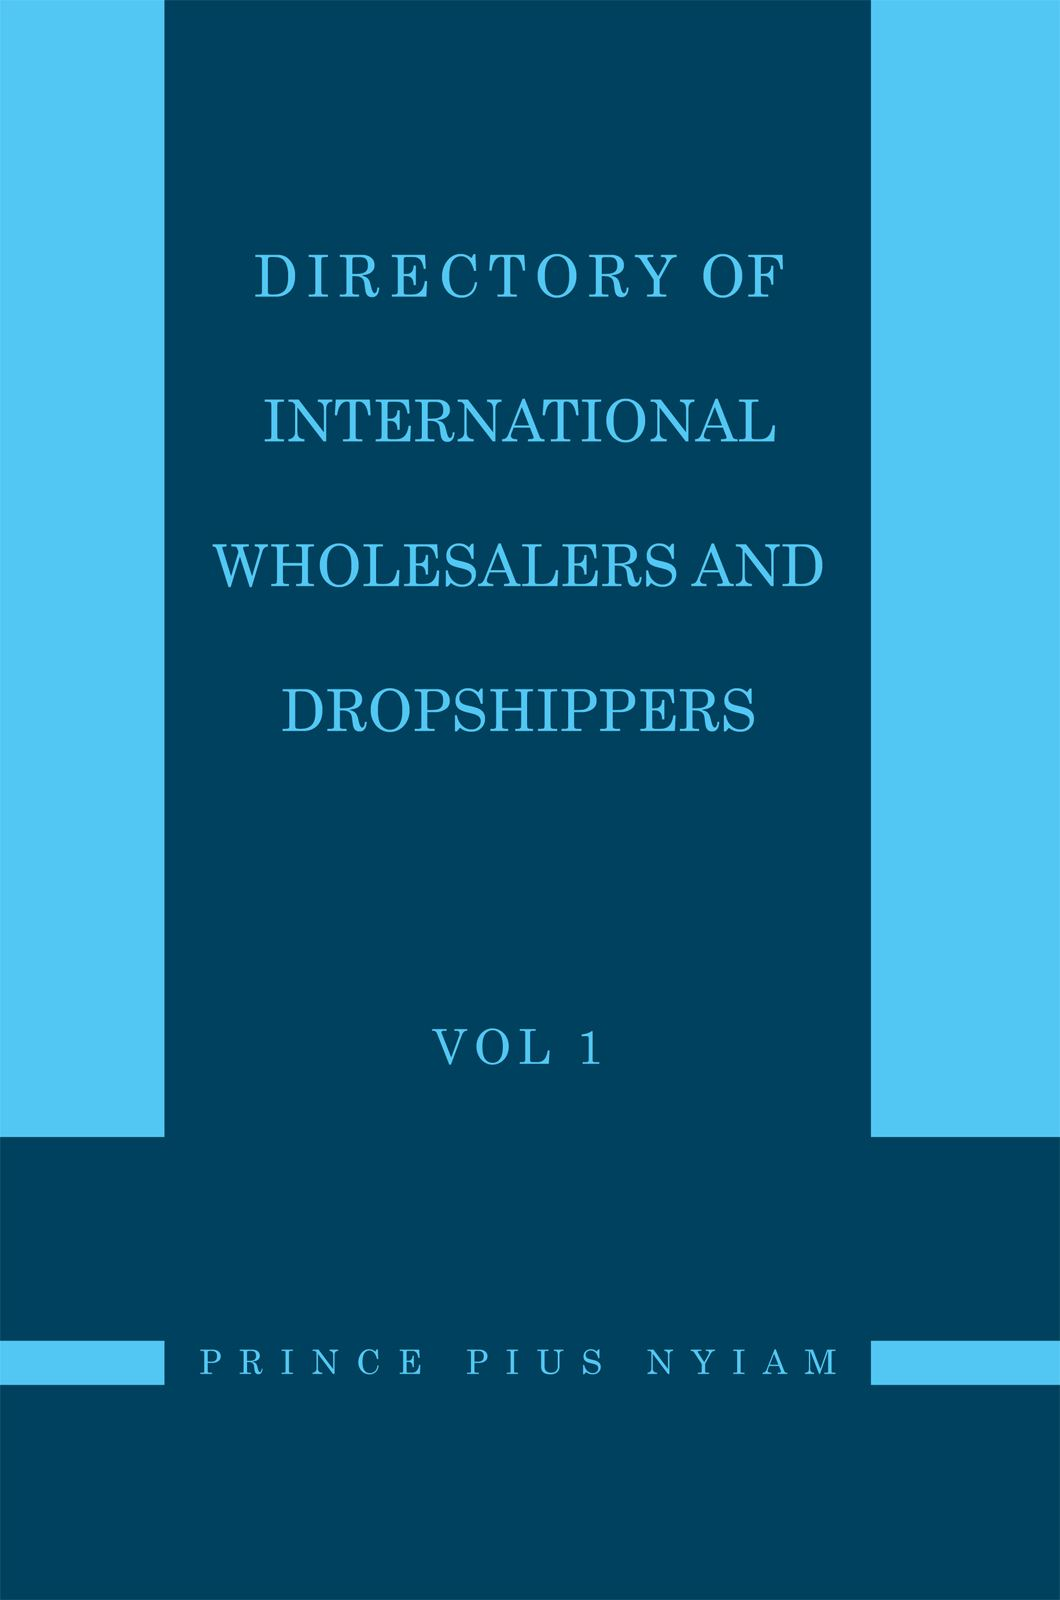 Directory of International Wholesalers and Dropshippers Vol 1 By: Prince Pius Nyiam